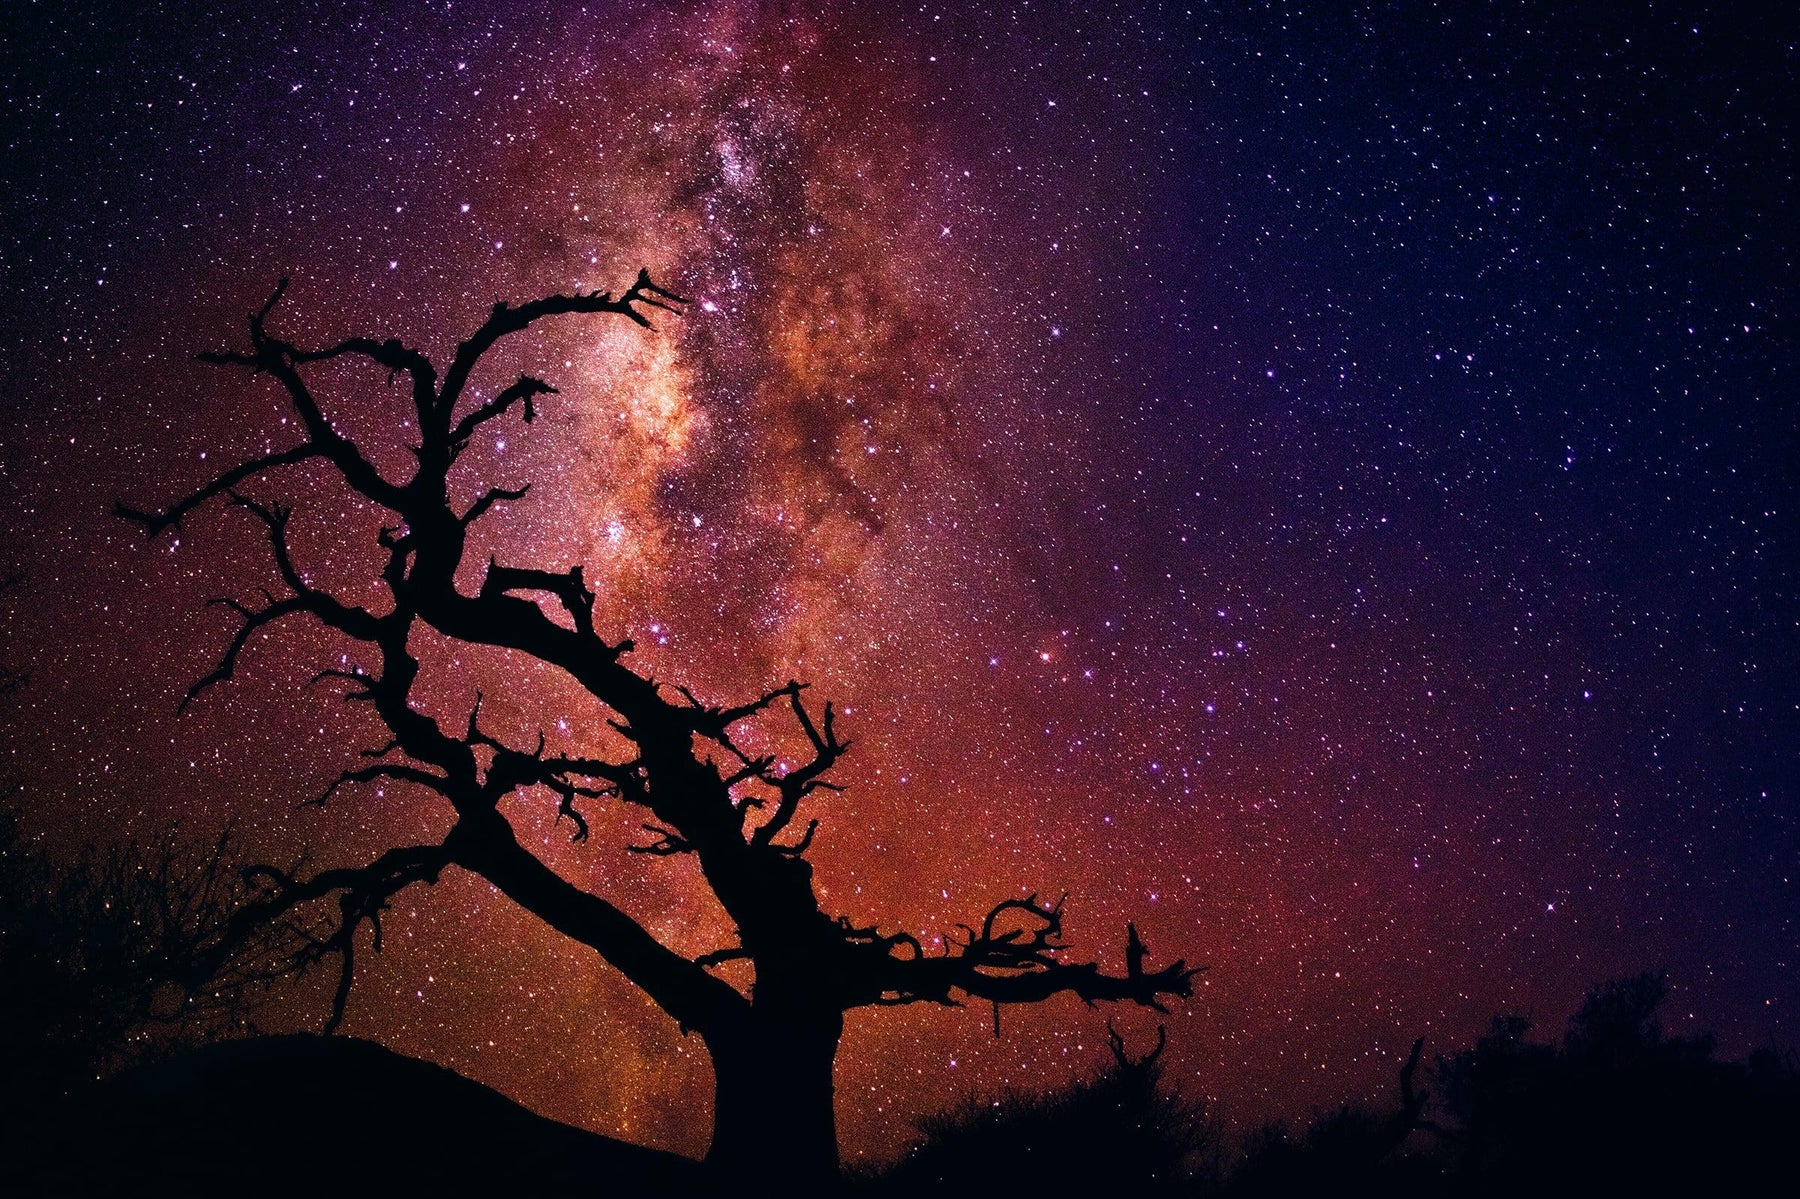 Silhouette of a leafless tree on the mountainside of Mauna Kea Hawaii below a sky filled with stars and the Milky Way